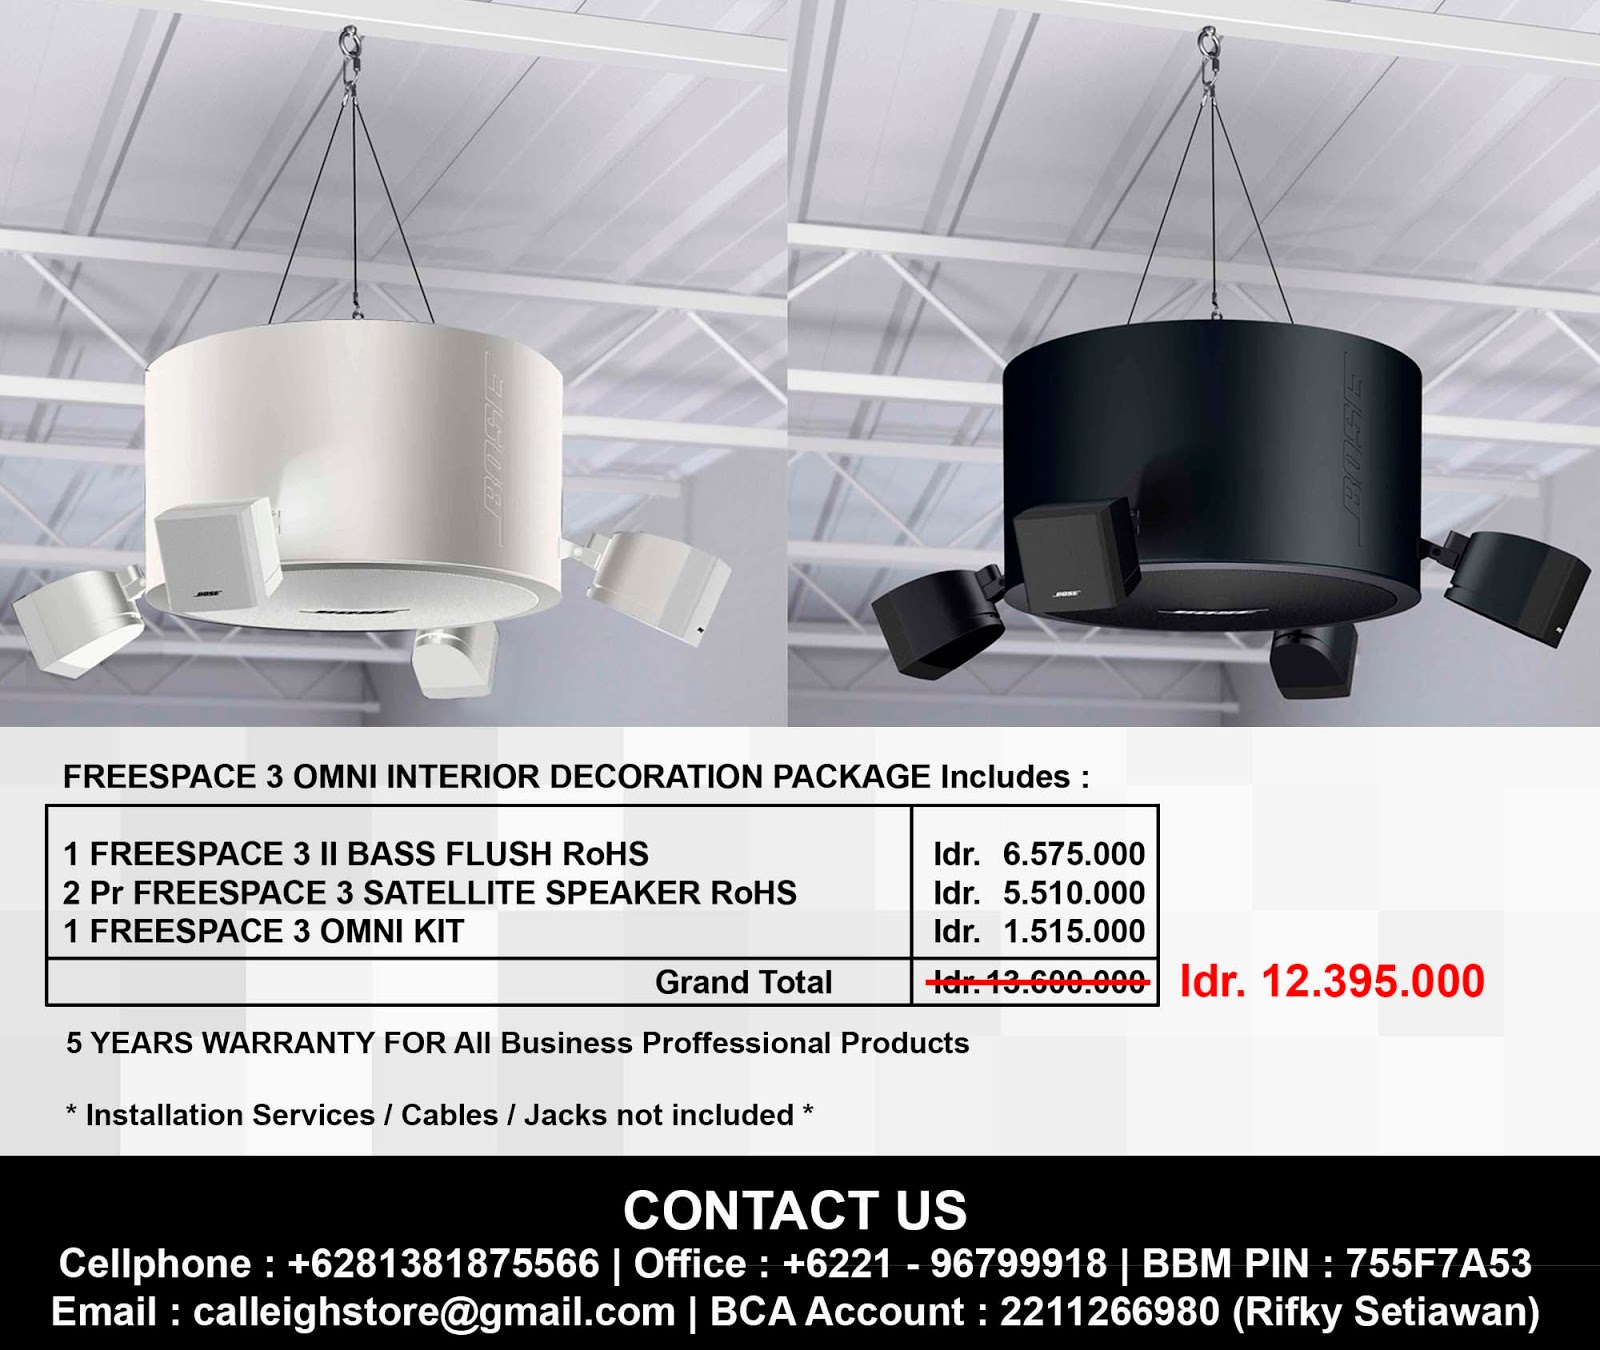 Bose Sound System Installation Services By Calleigh Store